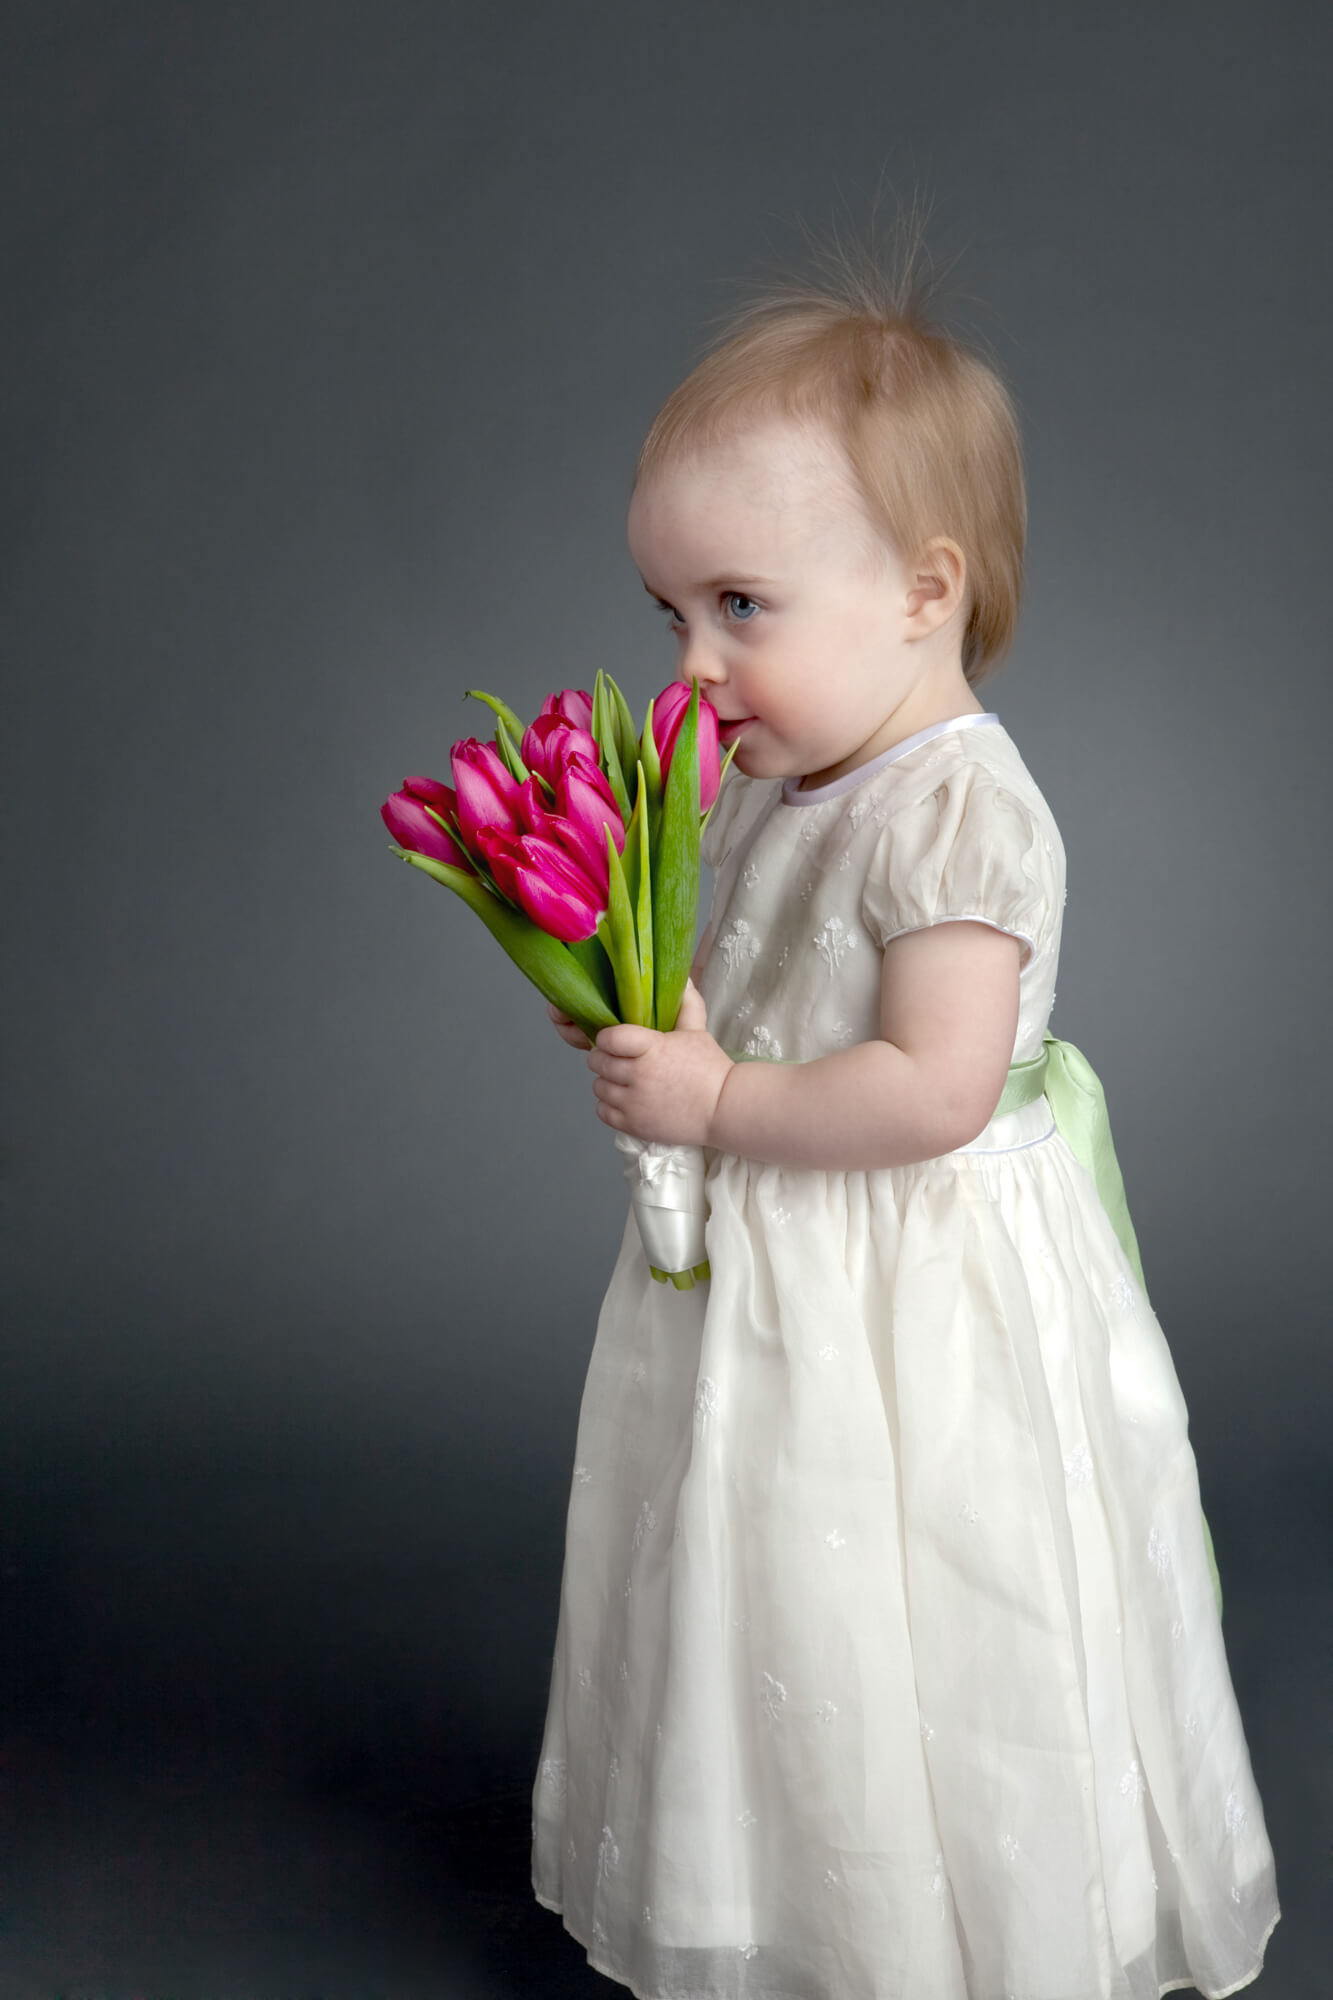 Young girl poses with tulips during portrait session